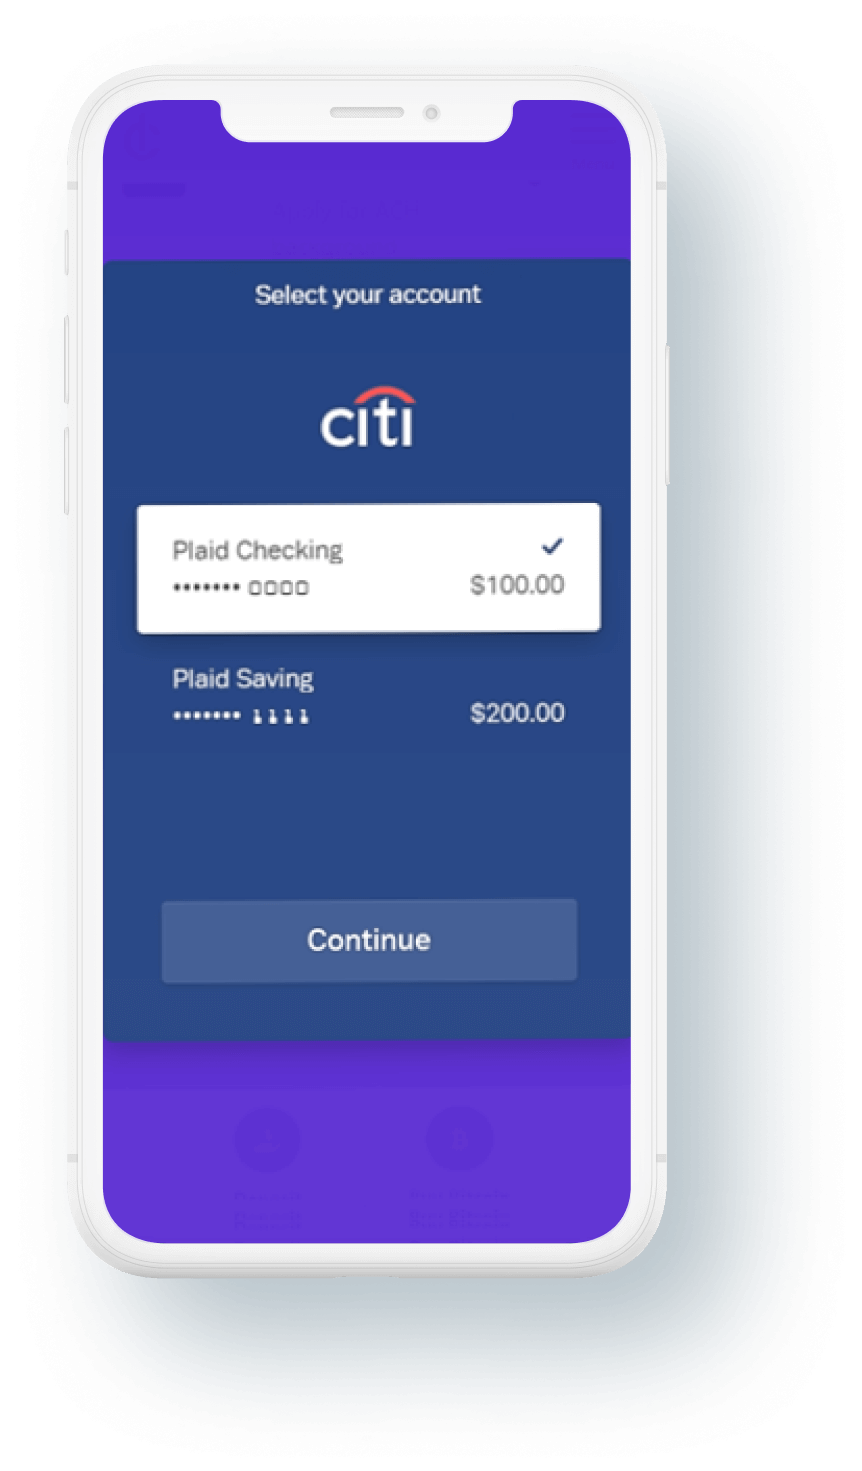 cryptodispensers-mobile-bank-account-select